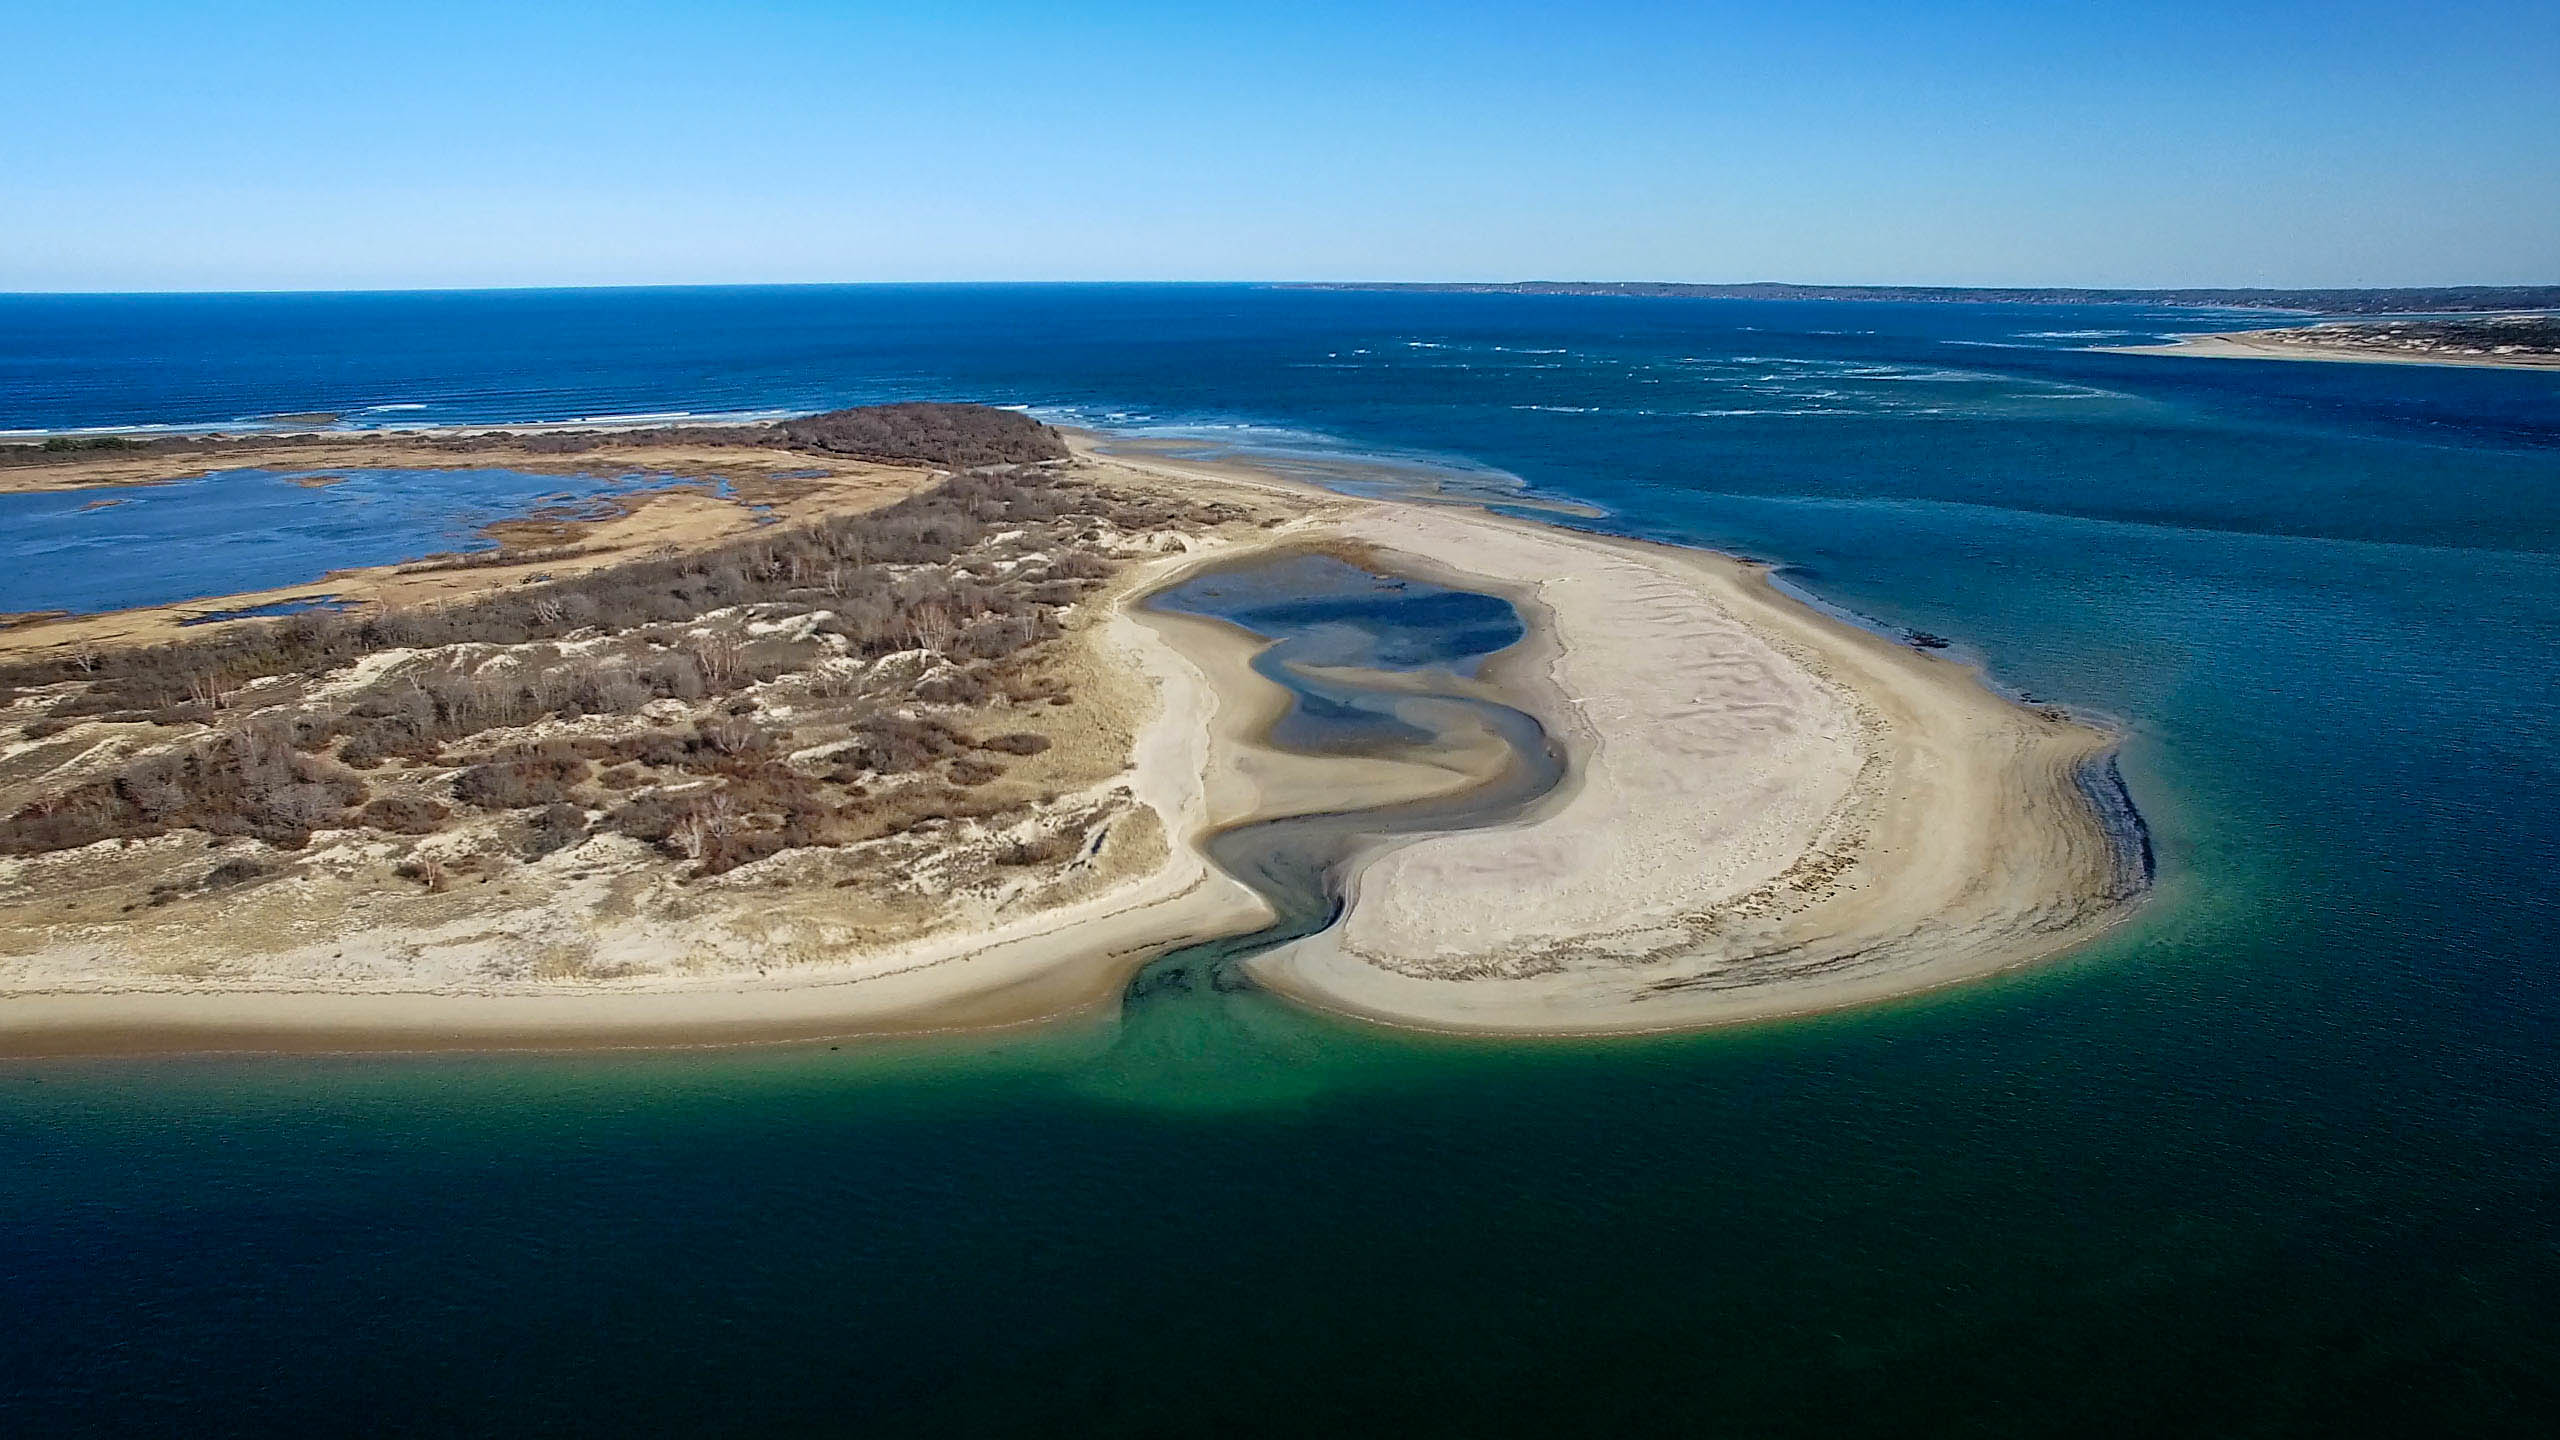 Sandy Point State Reservation from 400'